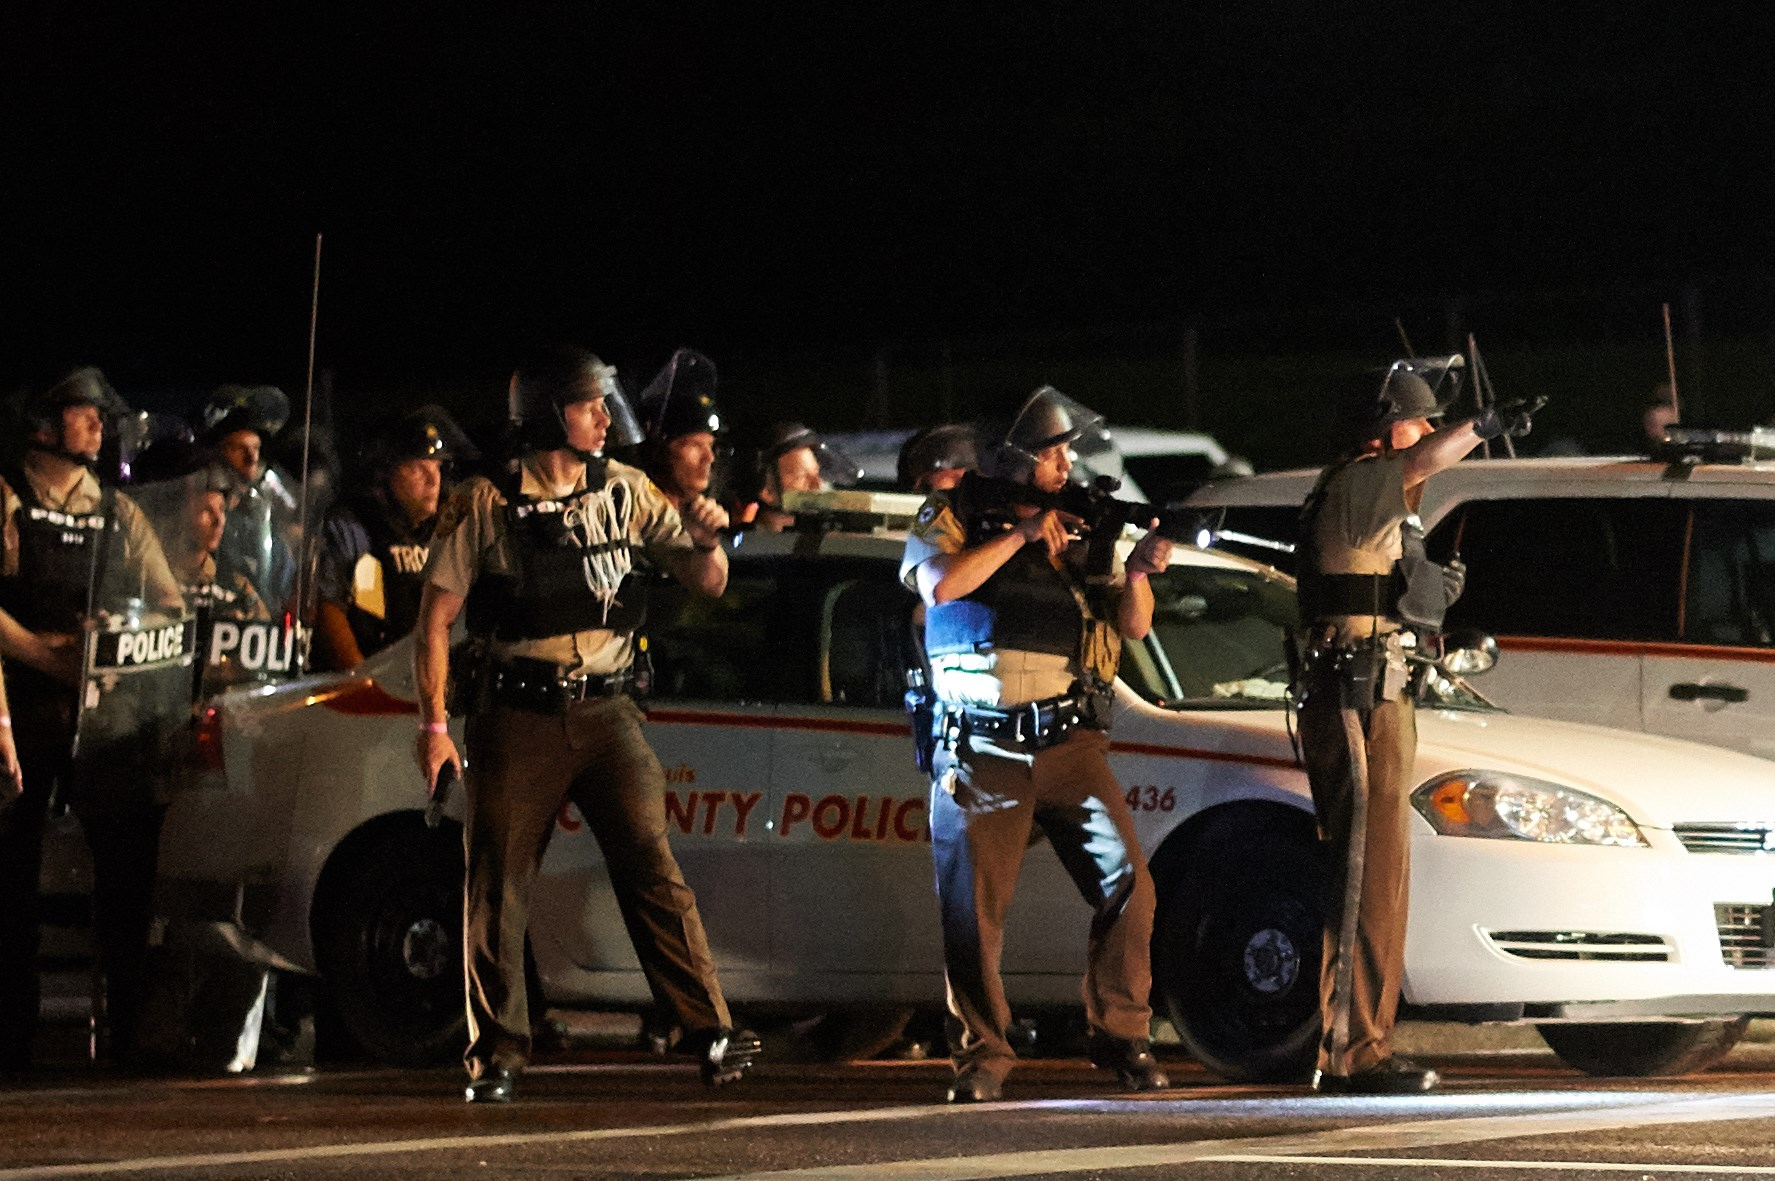 Ferguson shots fired, ferguson shooting, ferguson police involved shooting